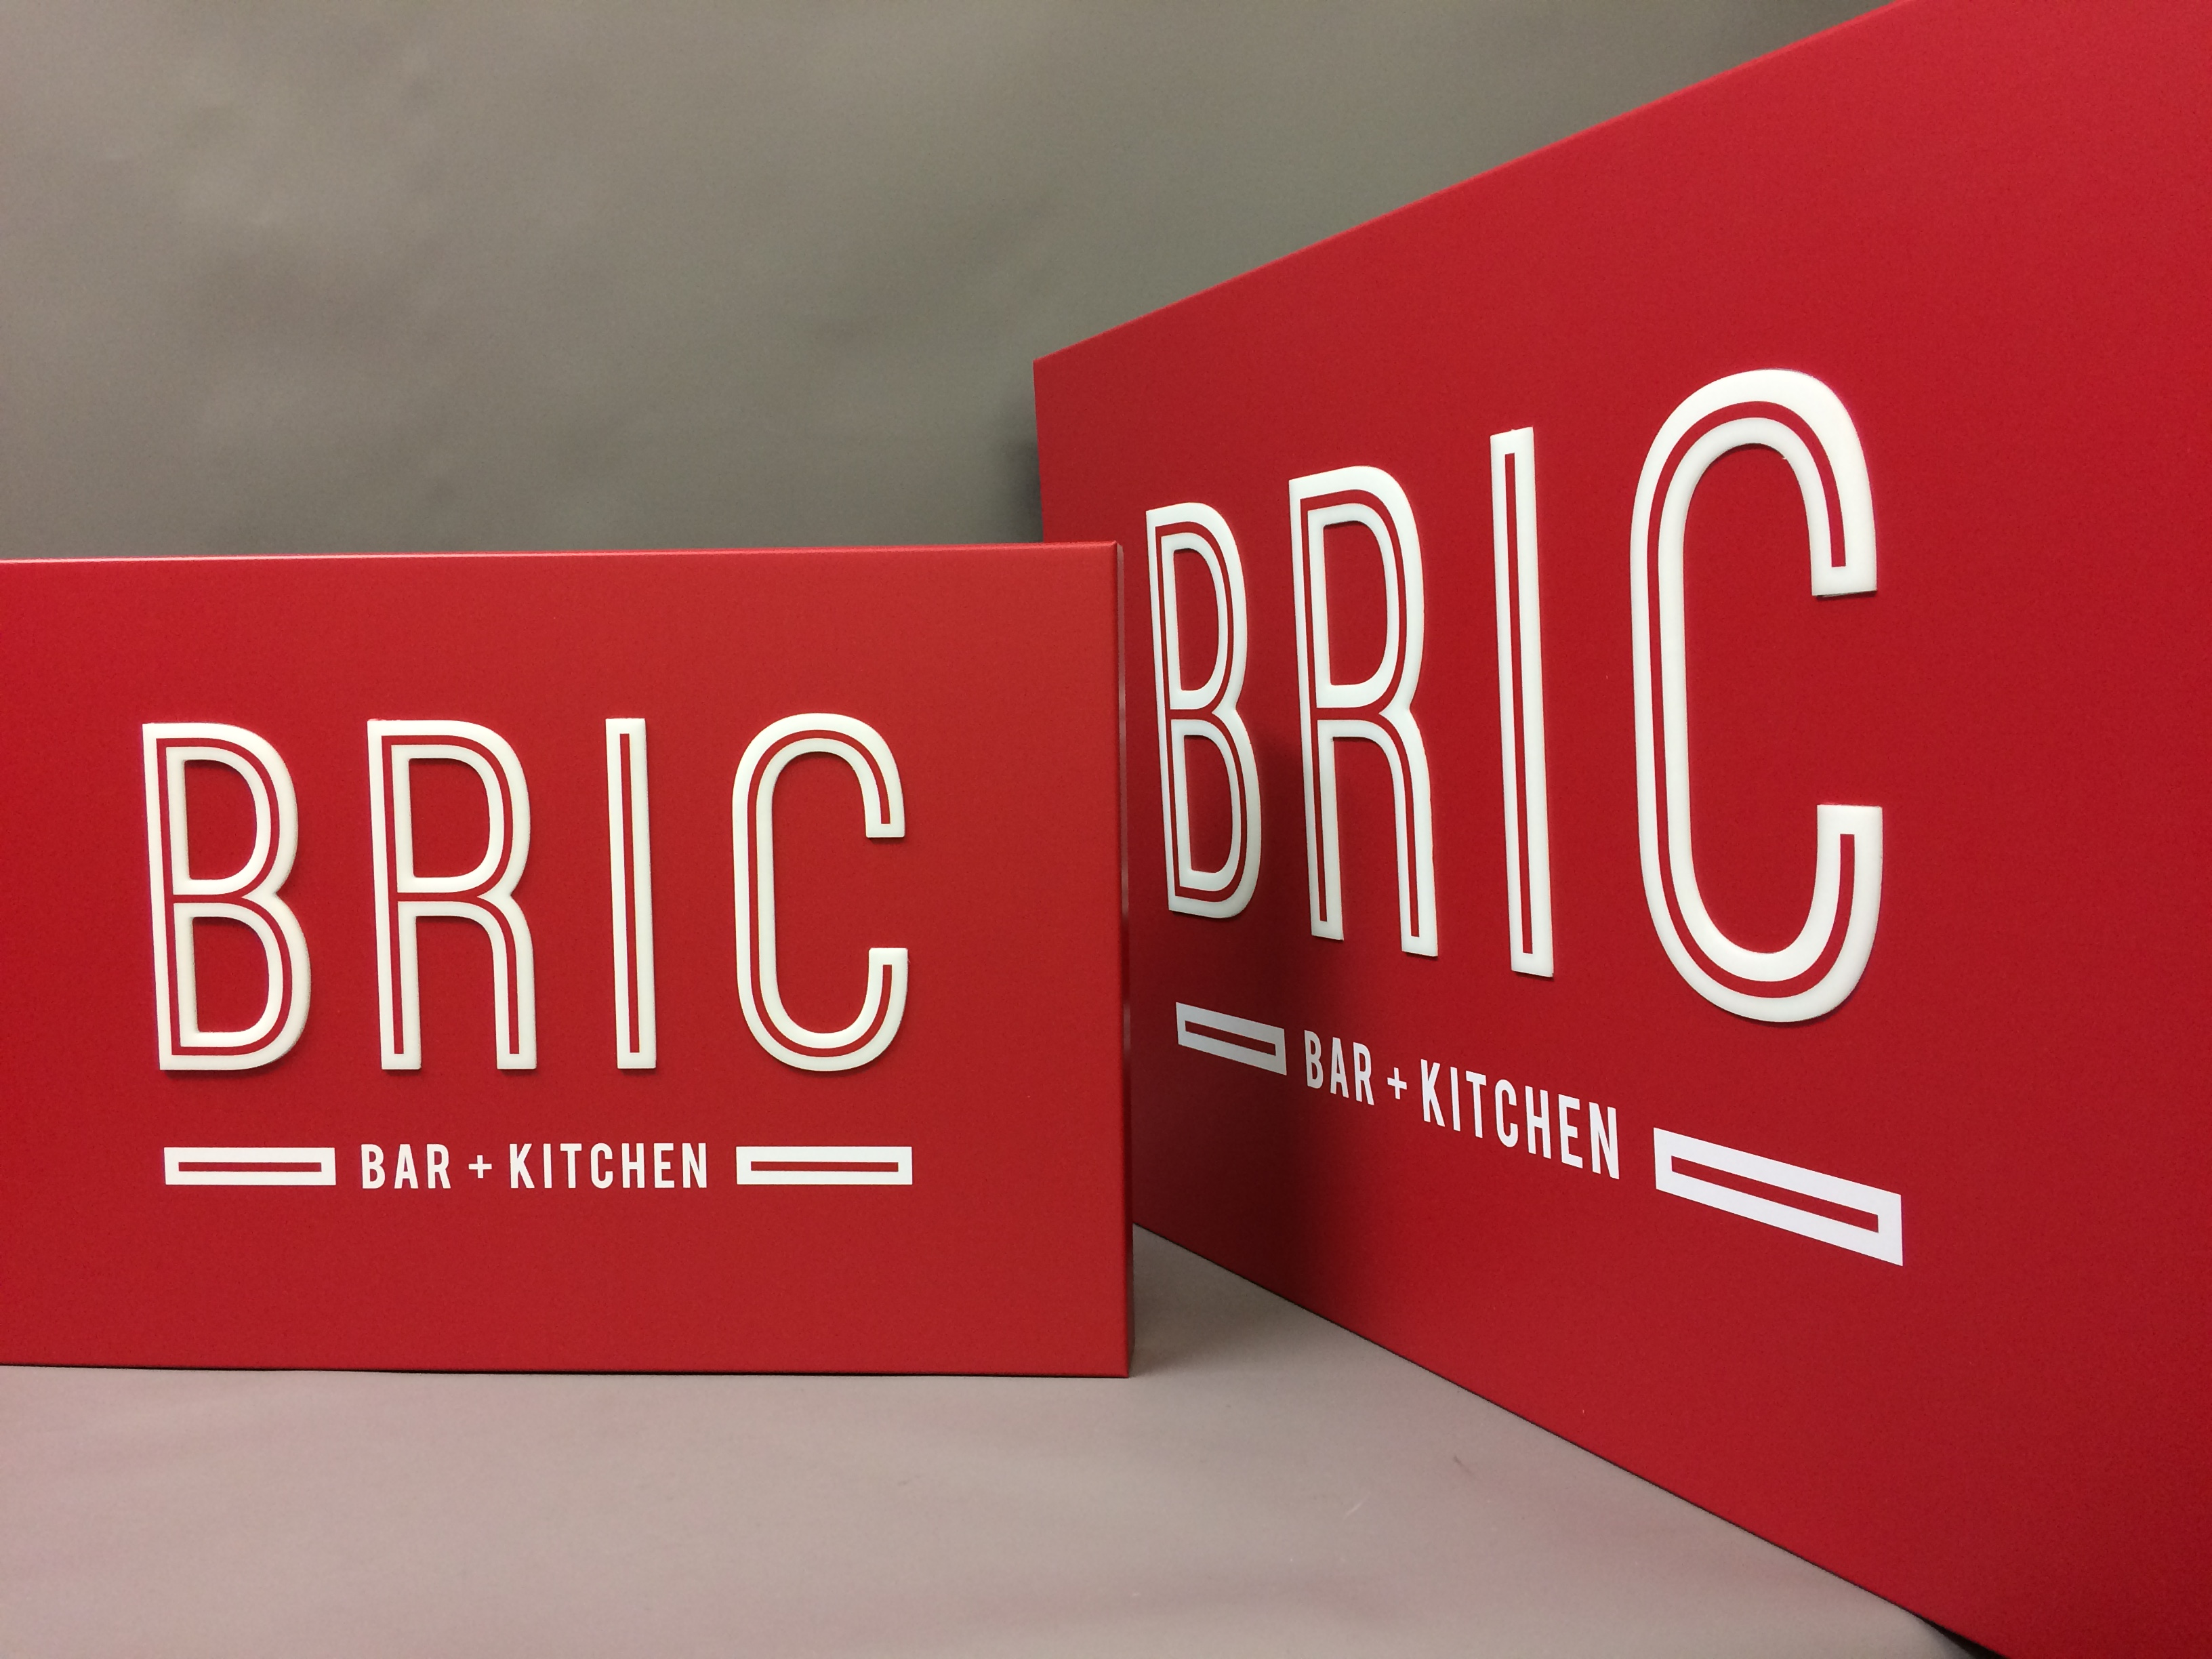 Bric bar and kitchen signage